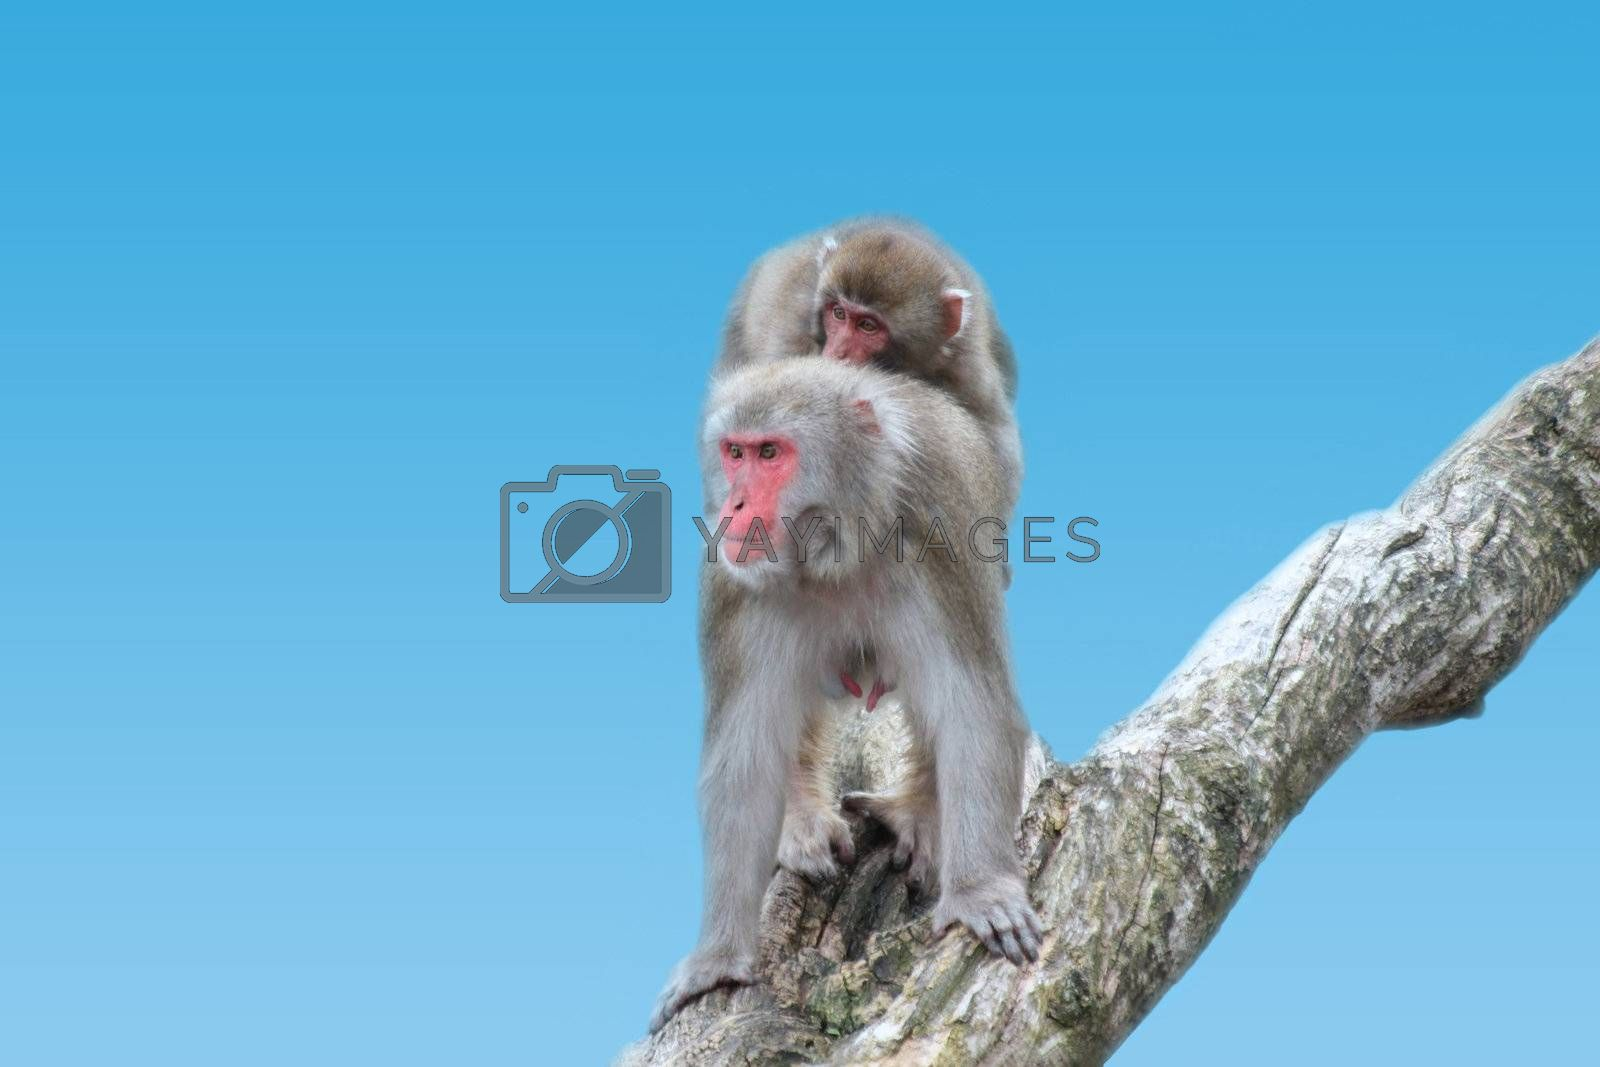 This image shows a mother macaque with her children